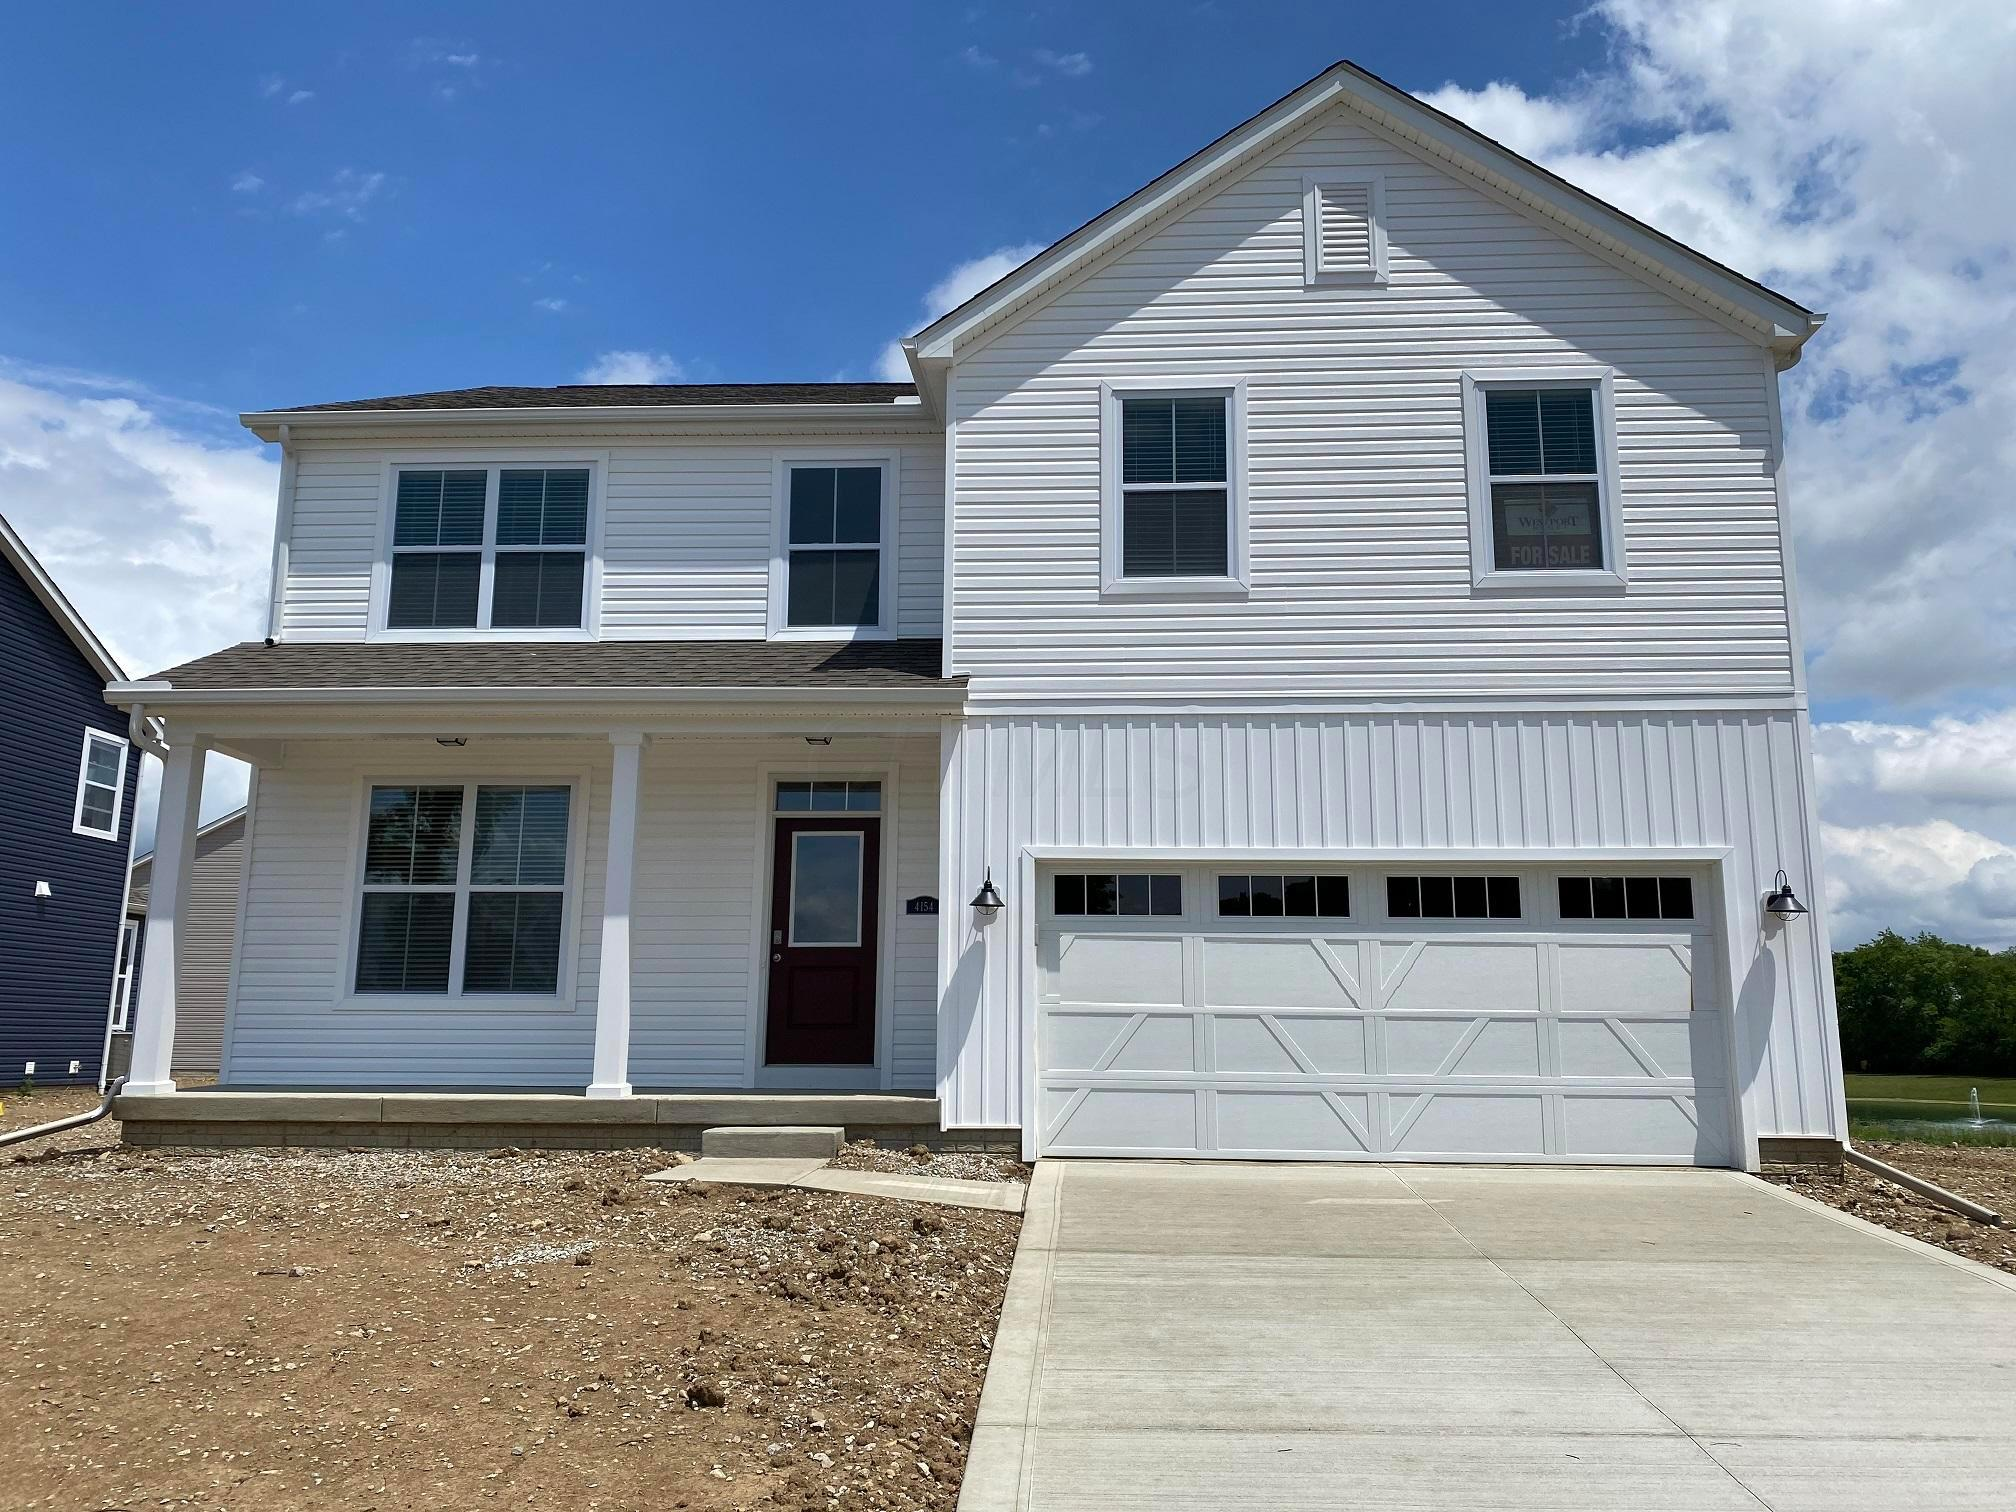 4154 Holstein Drive, Obetz, Ohio 43207, 4 Bedrooms Bedrooms, ,3 BathroomsBathrooms,Residential,For Sale,Holstein,220017644